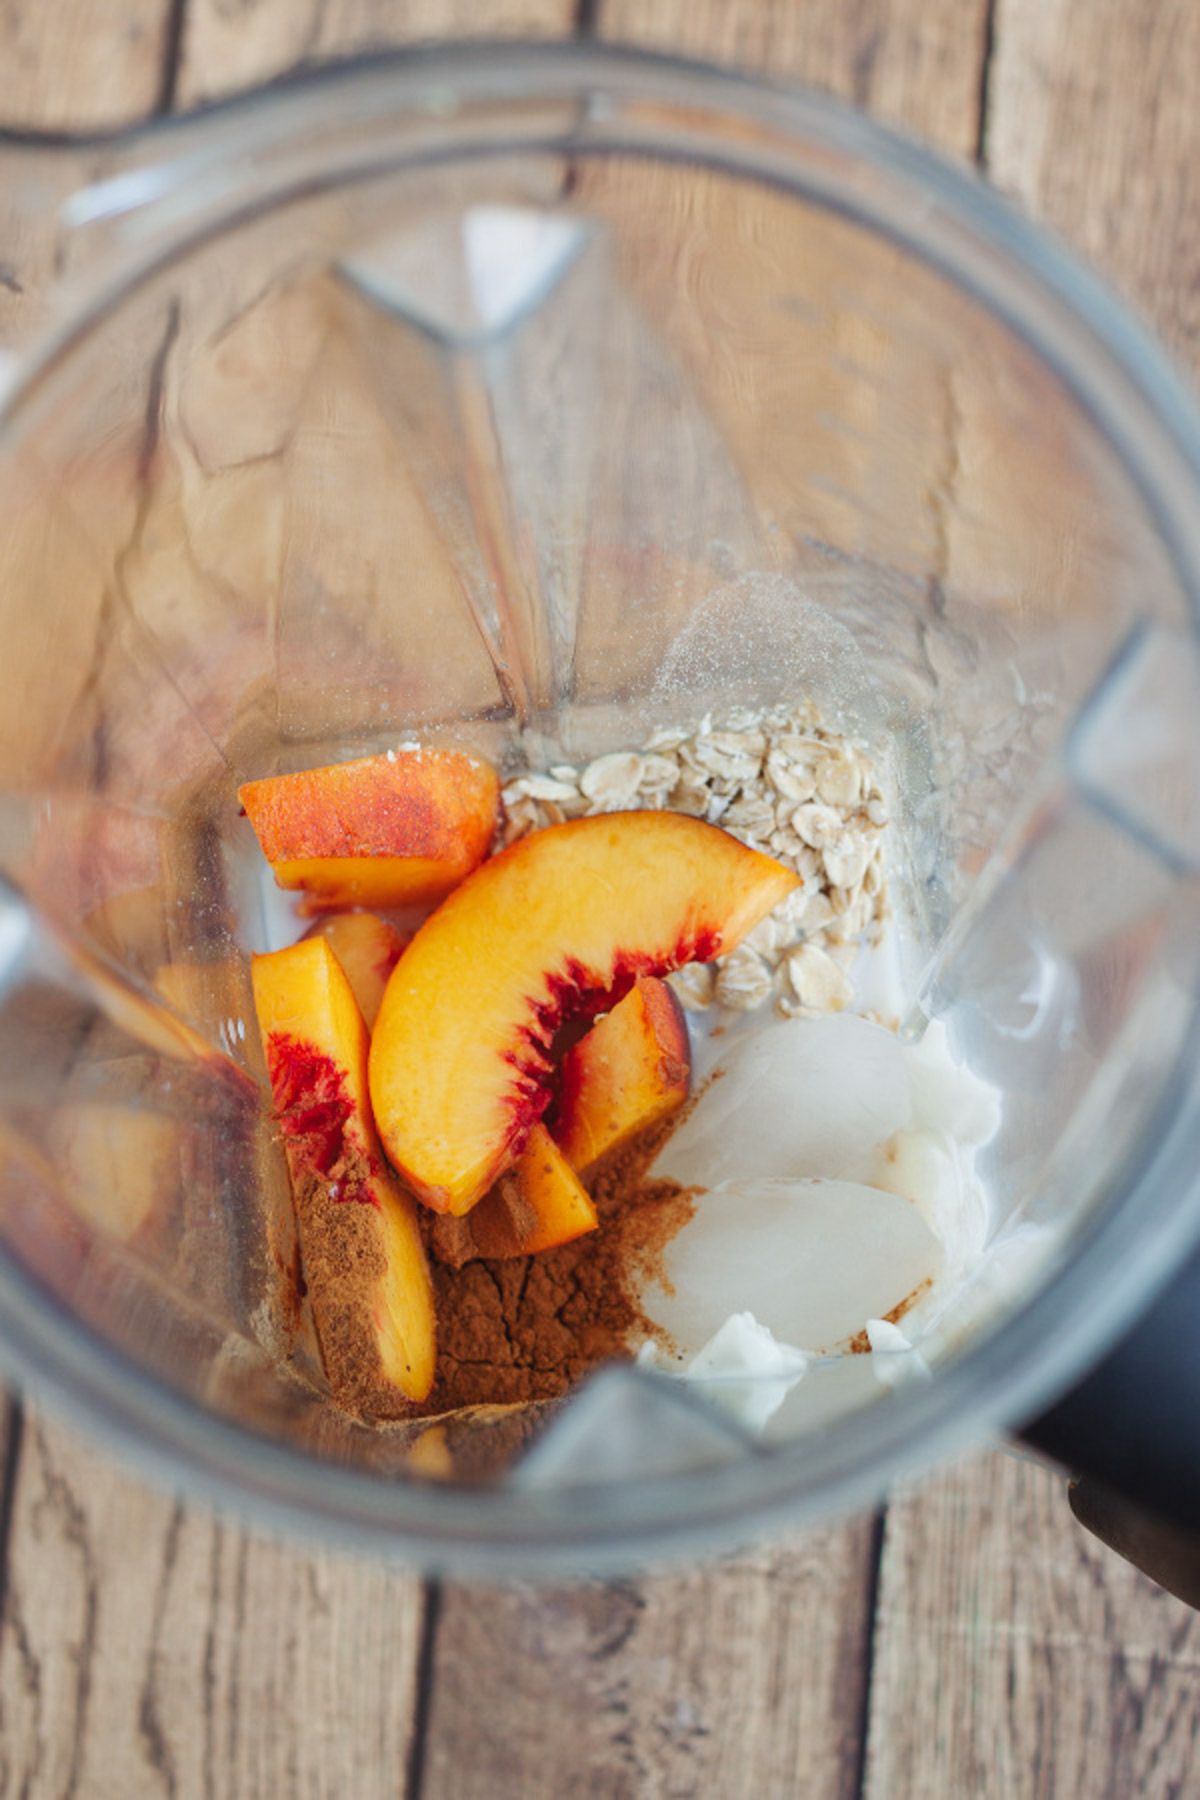 Top view into a blender jar with peaches and other ingredients to make a peach smoothie with yogurt.